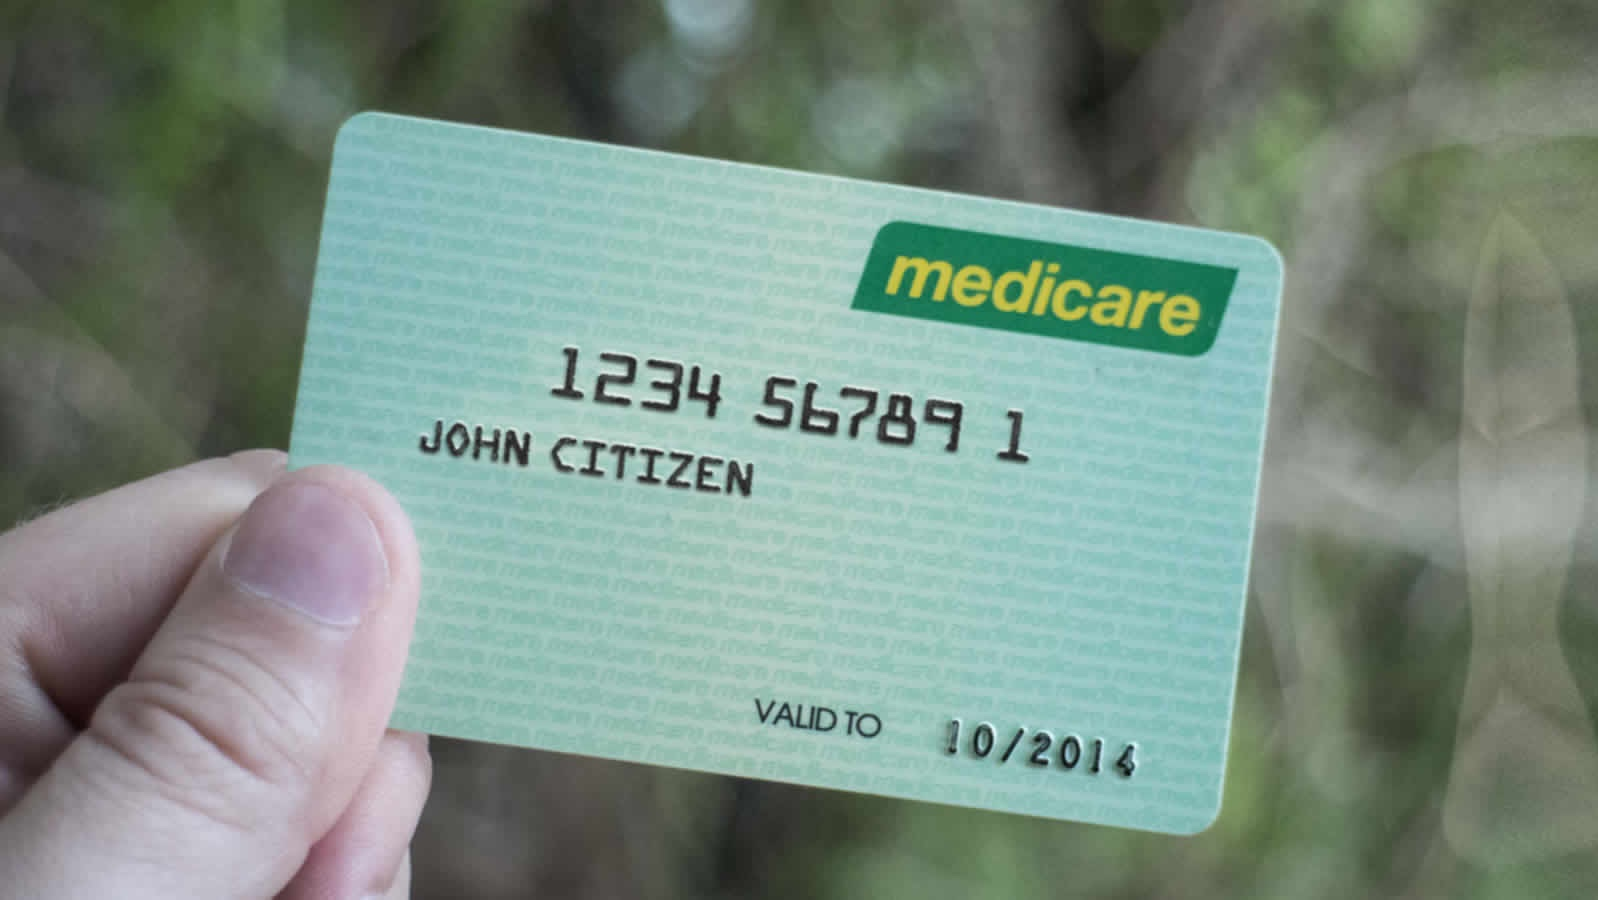 It's generally free health care, with some exceptions. Img from Lifehacker Australia.